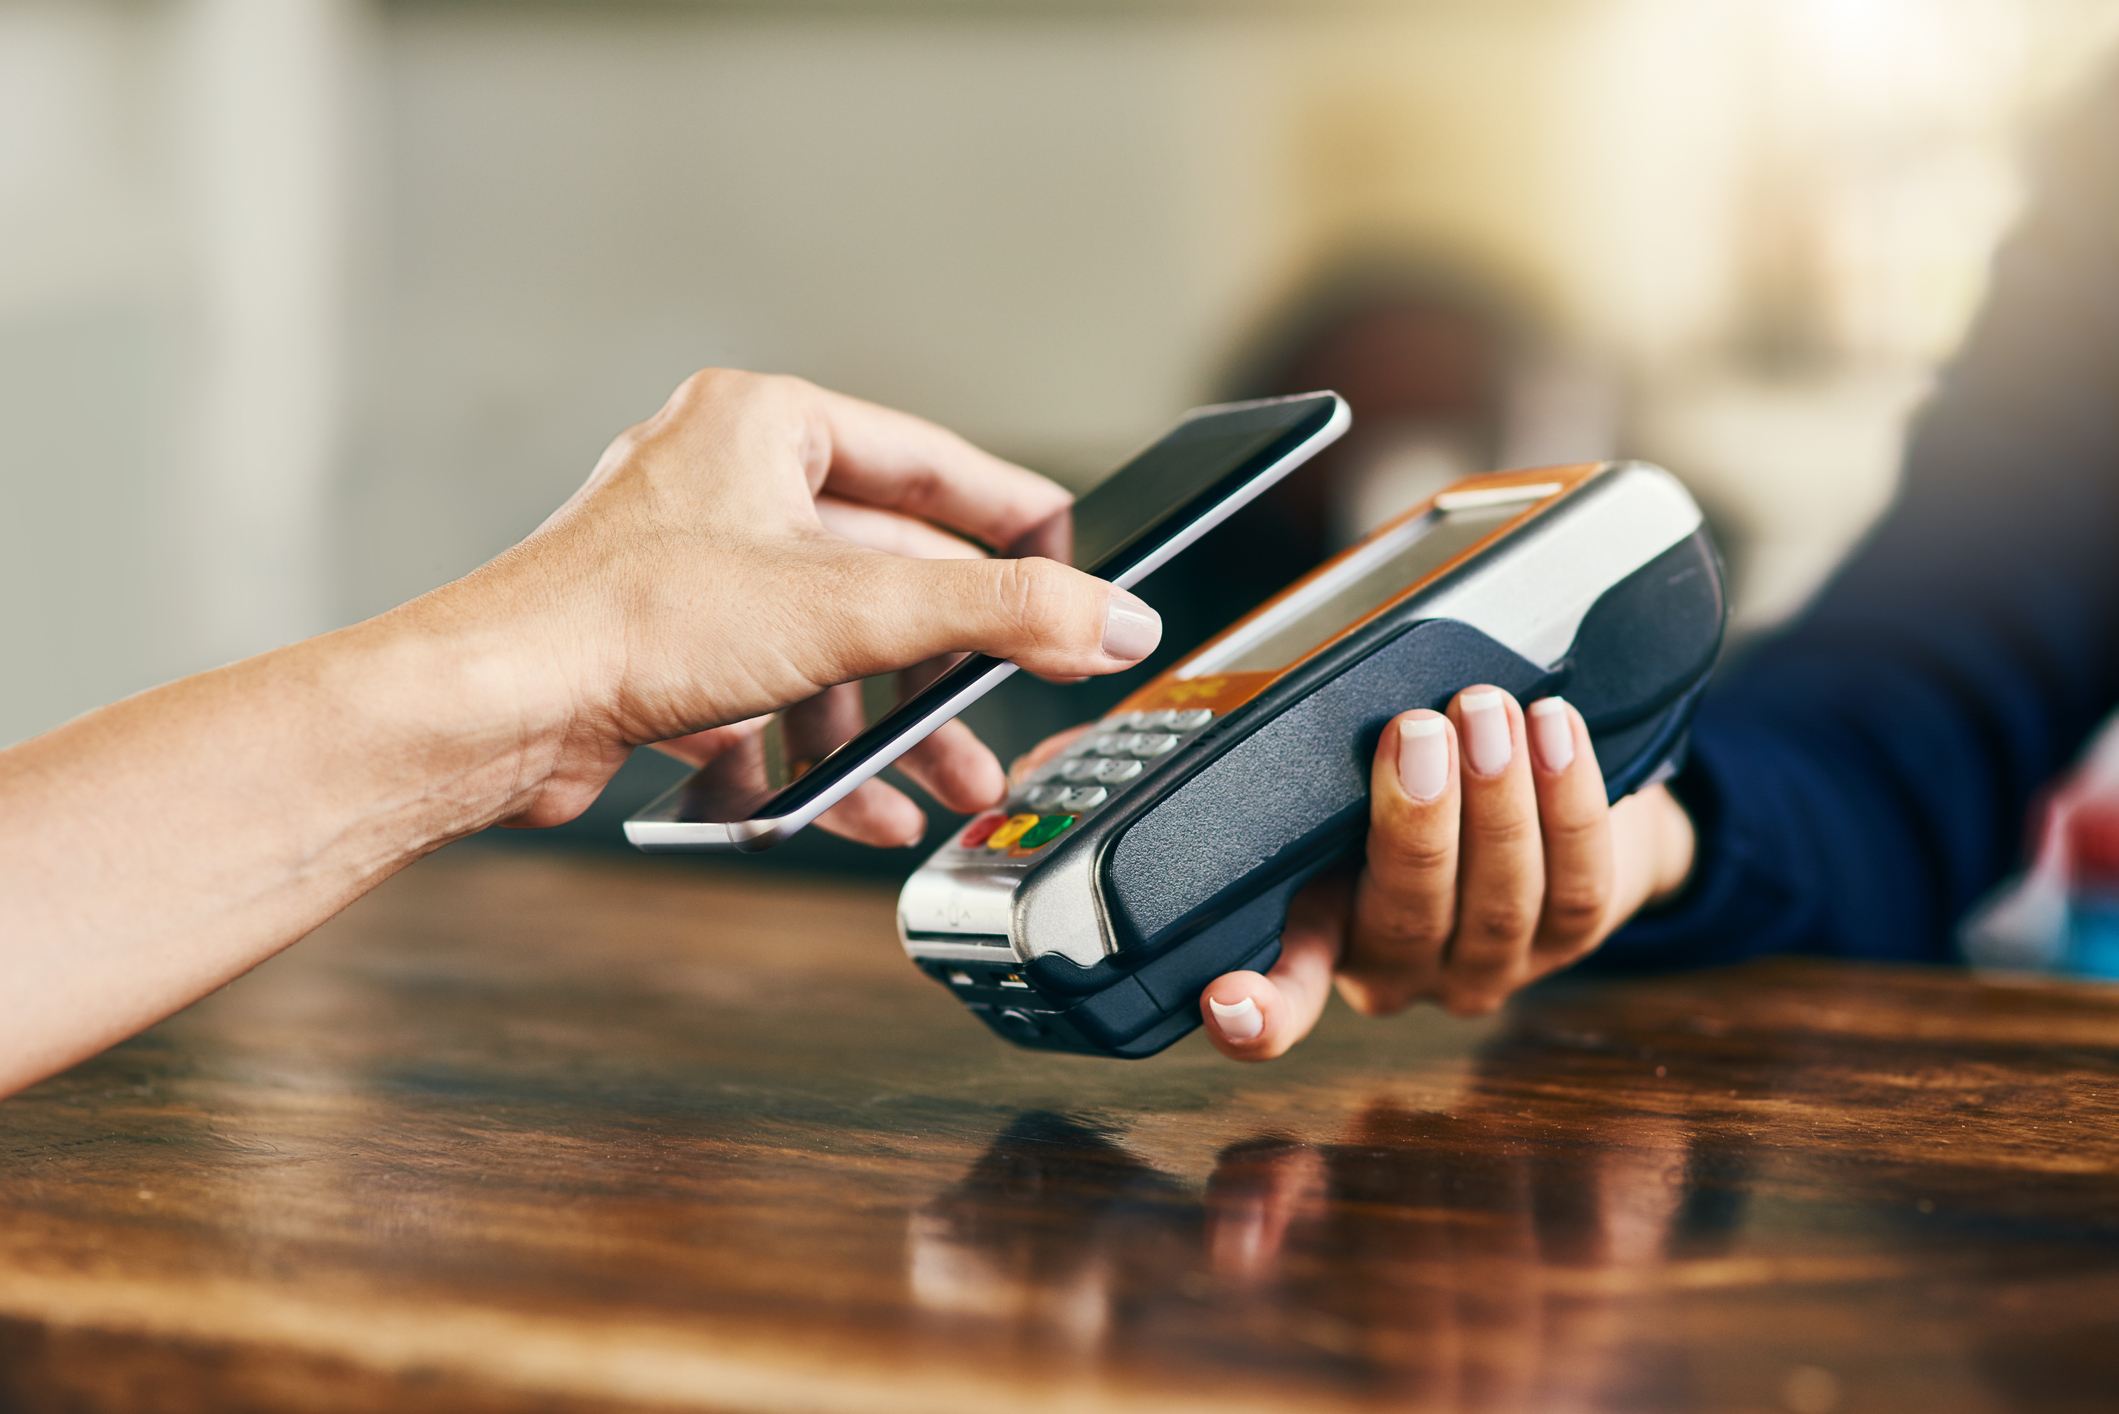 A student uses Mobile Pay on a smartphone to pay at a store with contactless credit payments.